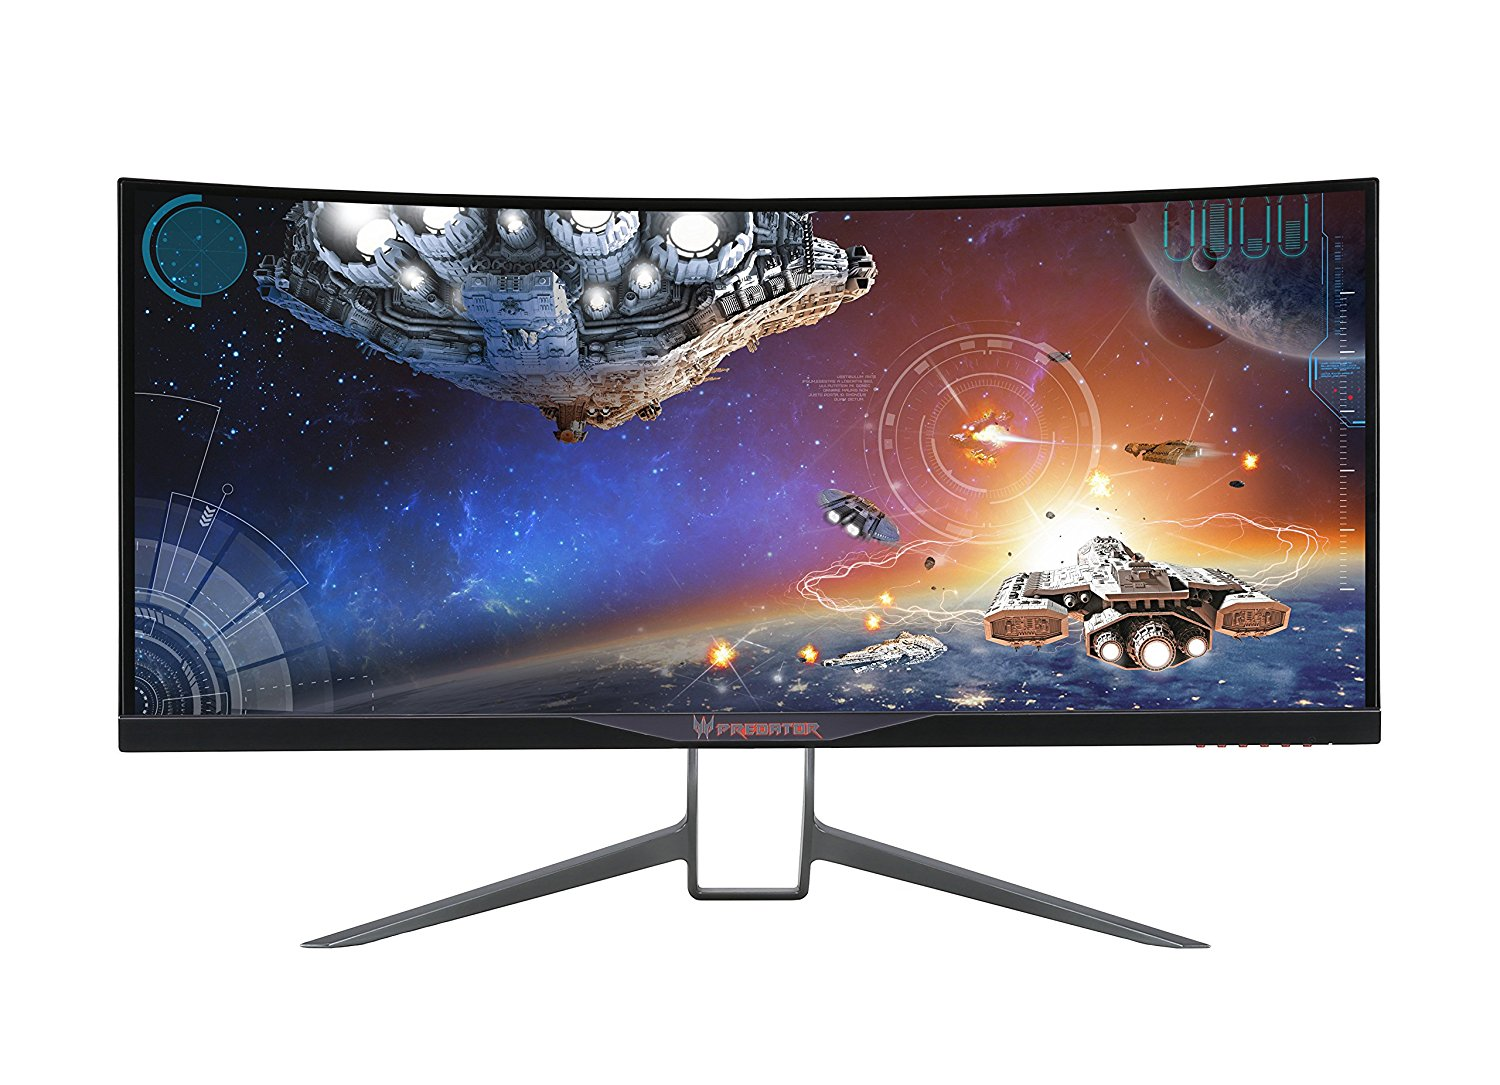 Acer Predator Curved QHD Ultrawide Curved Monitor Computer Monitor - NVIDIA G-Sync Widescreen Display, Available in Multiple Sizes